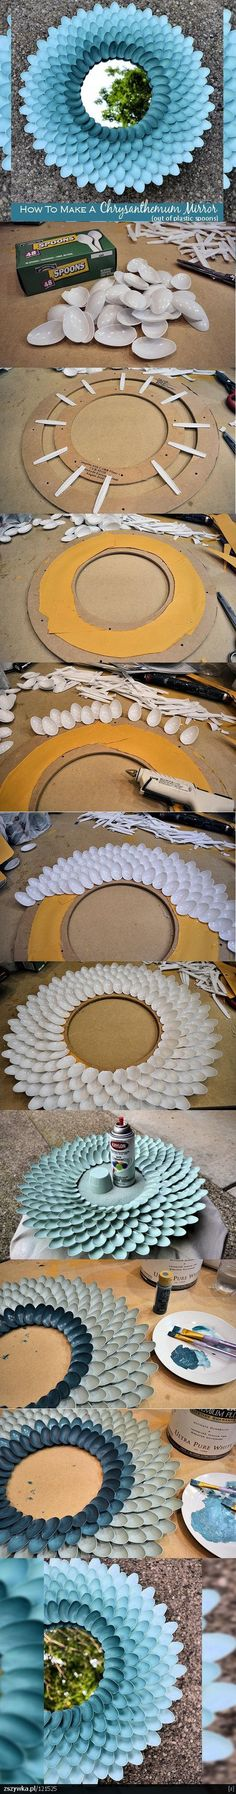 Chrysanthemum Mirror made out of plastic spoons.